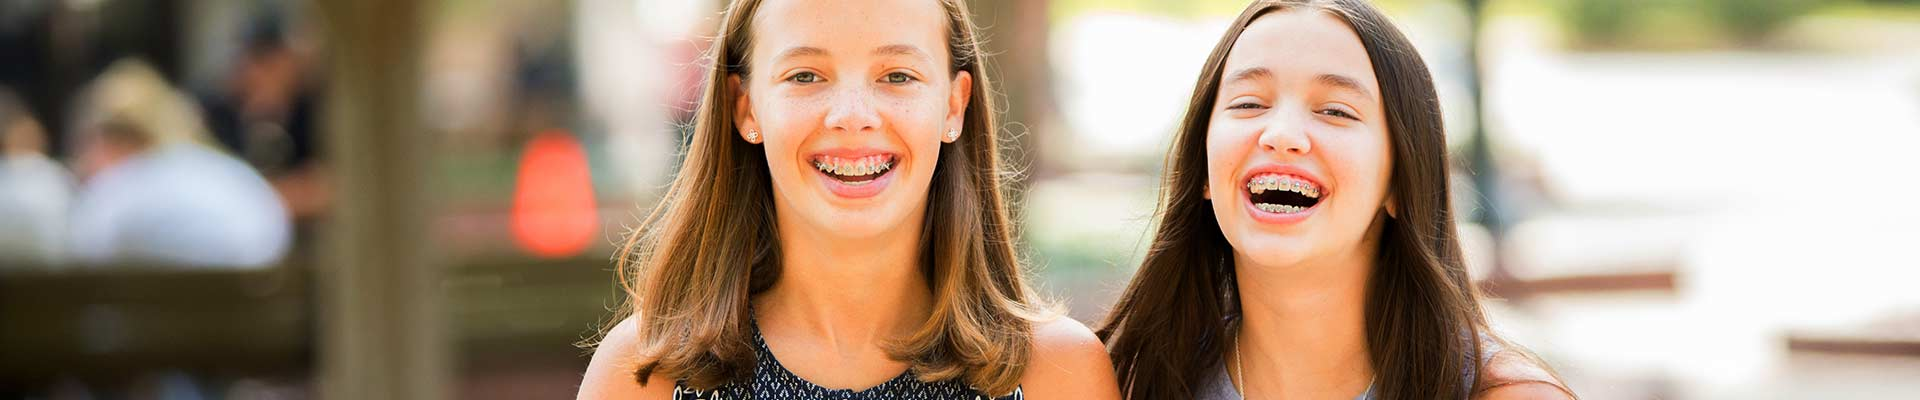 Early Treatment Journey Orthodontics Sioux Falls and Yankton, SD